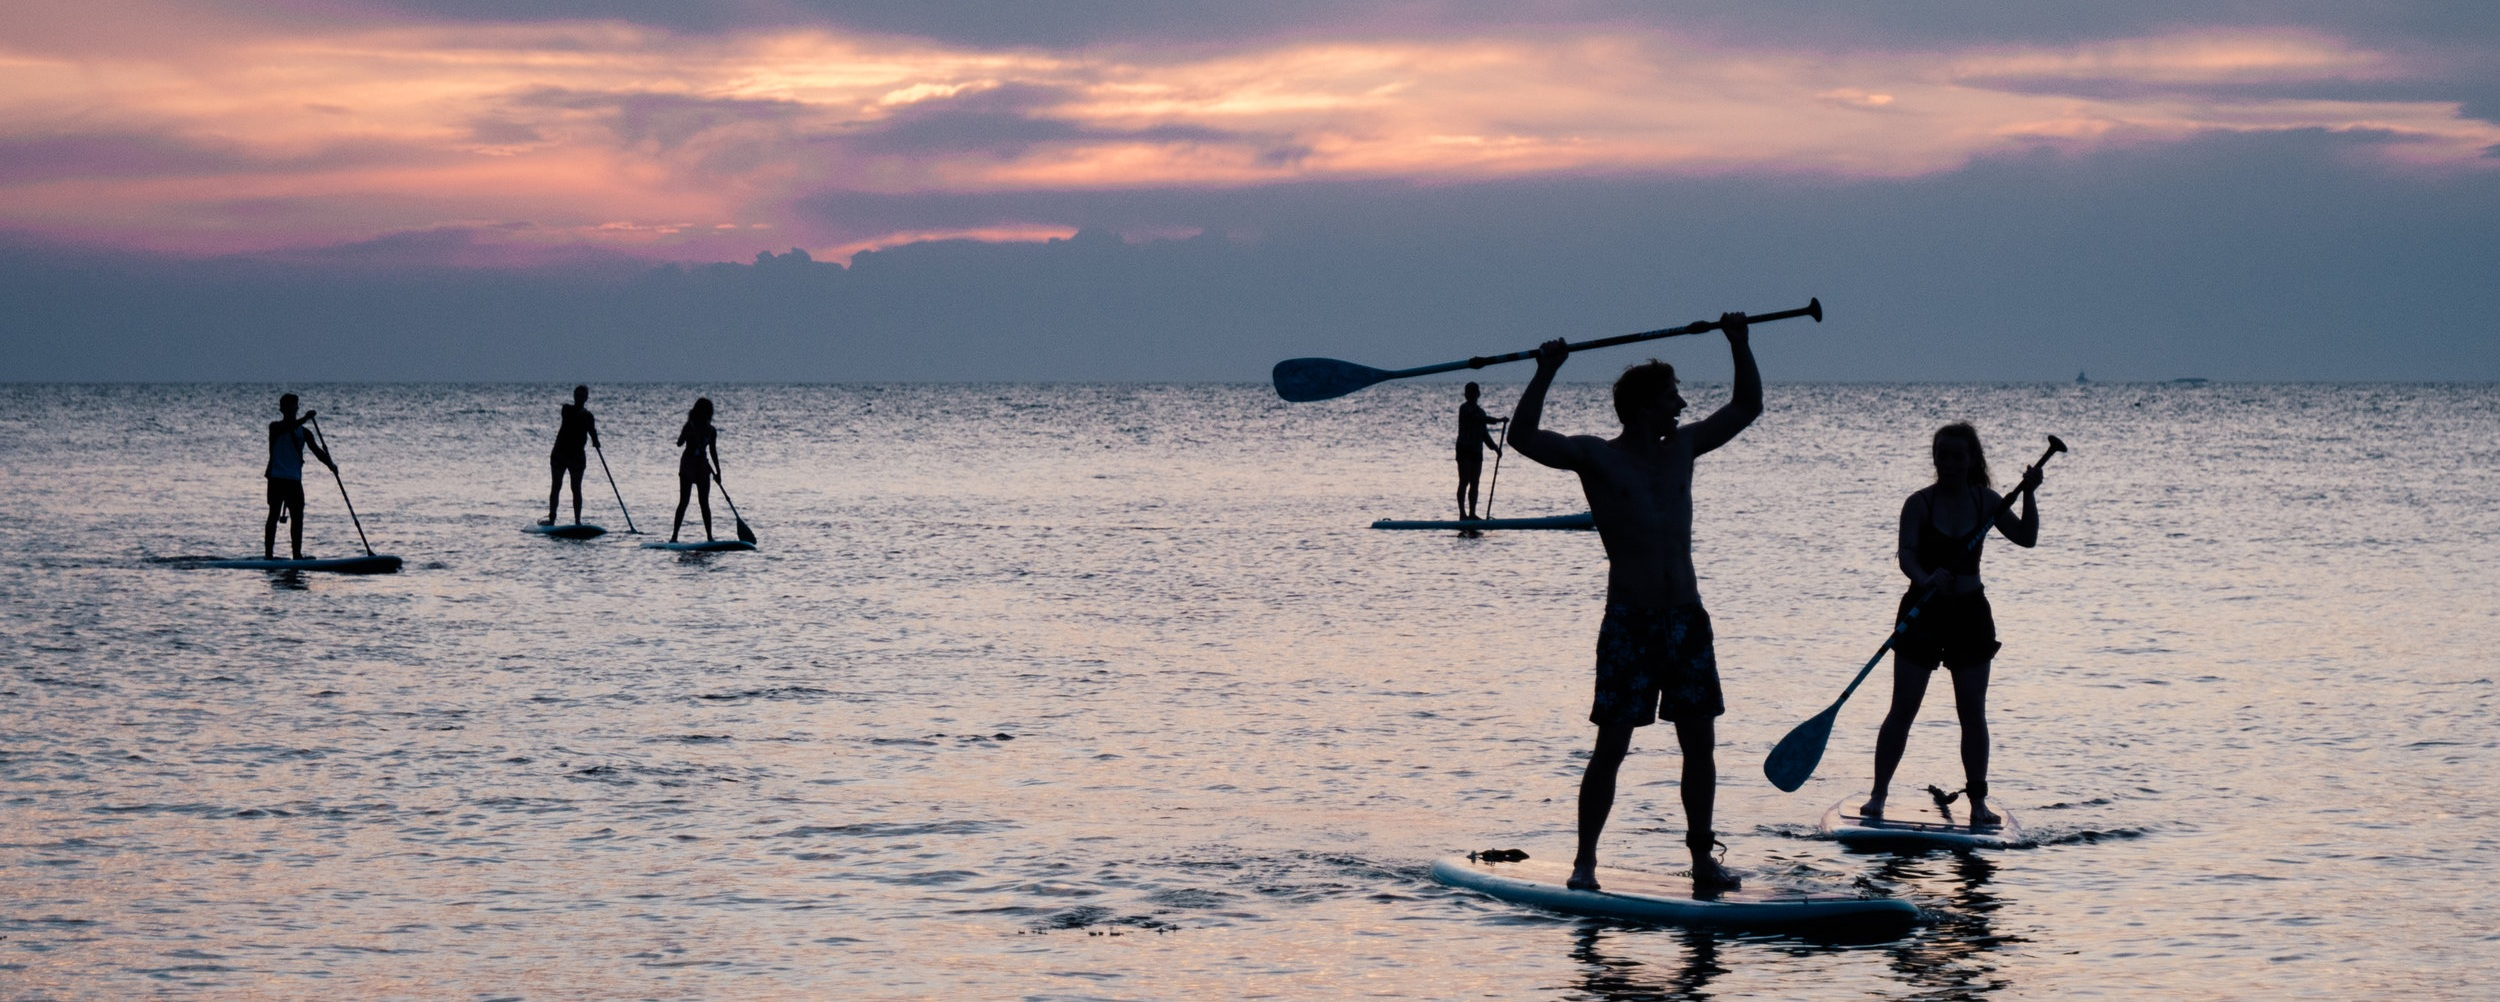 SUP Yoga - Our 2019 SUP Class Schedule will be posted Shortly!